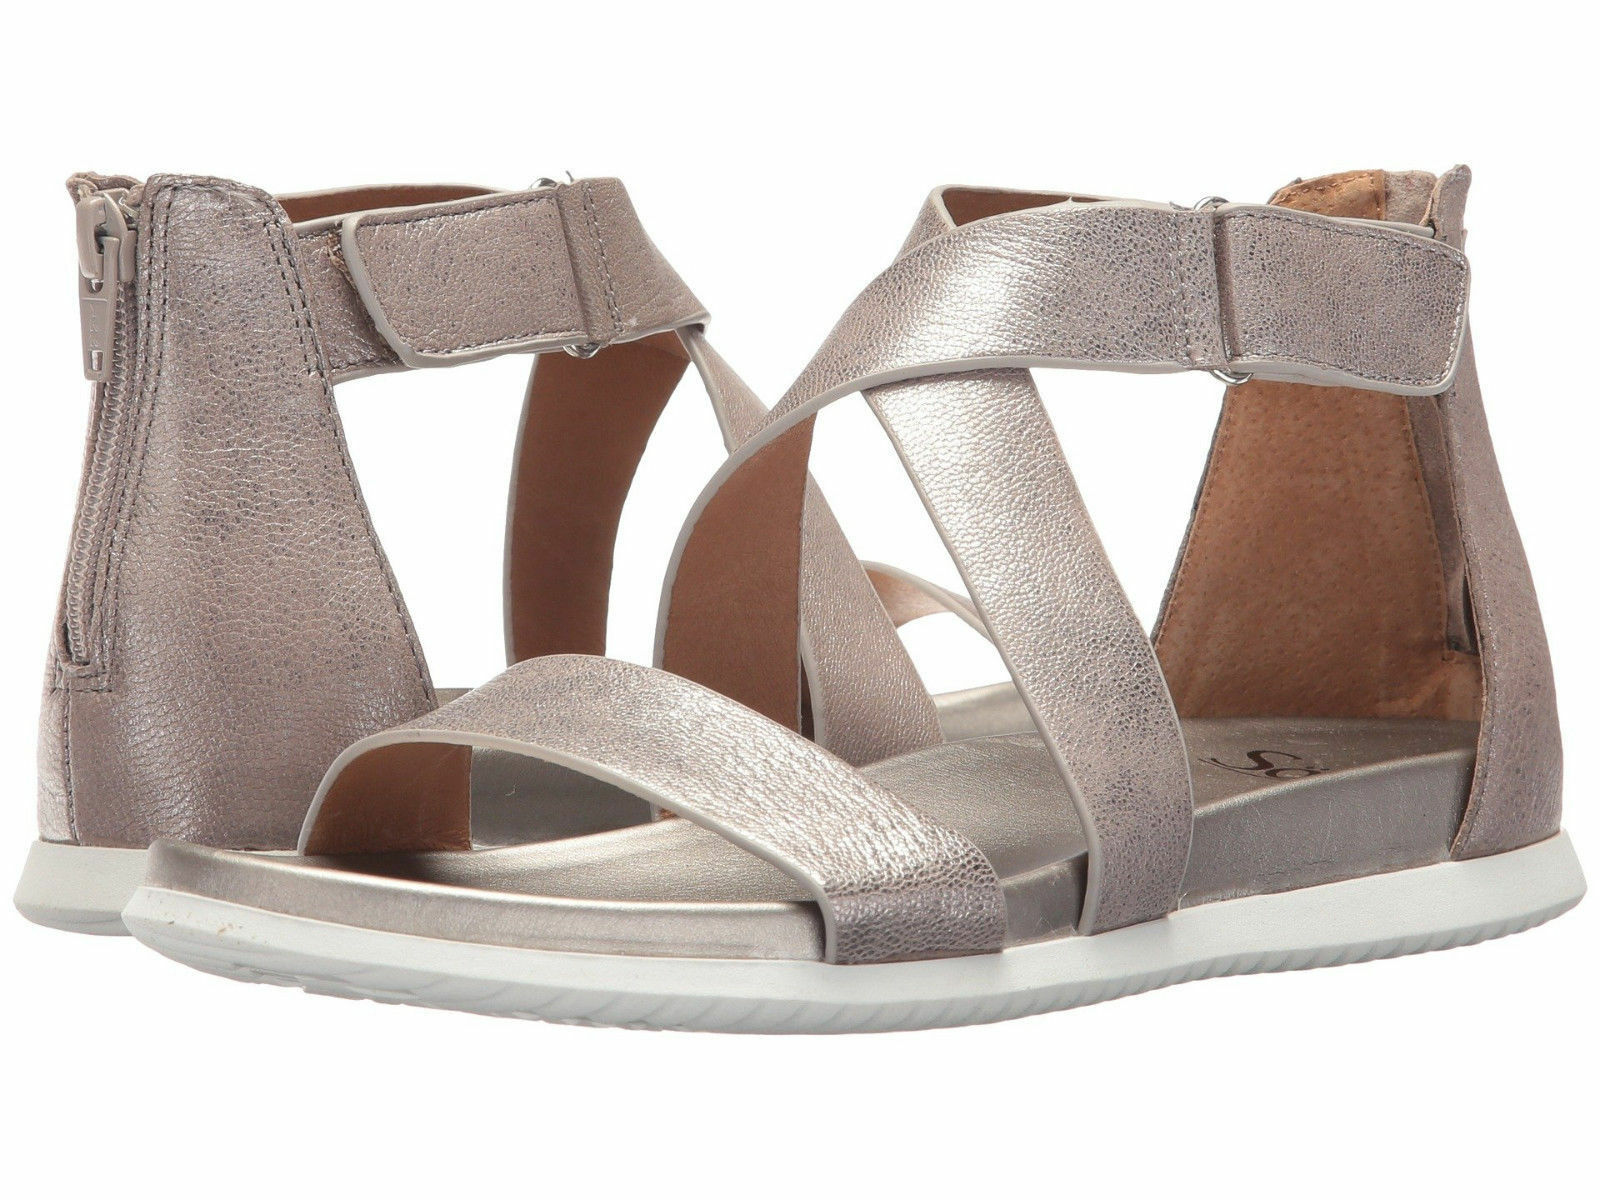 NIB Sofft Women's Fiora Leather Strappy Sandals Sandals Sandals in Anthracite Silver Sz 8.5 20c41a